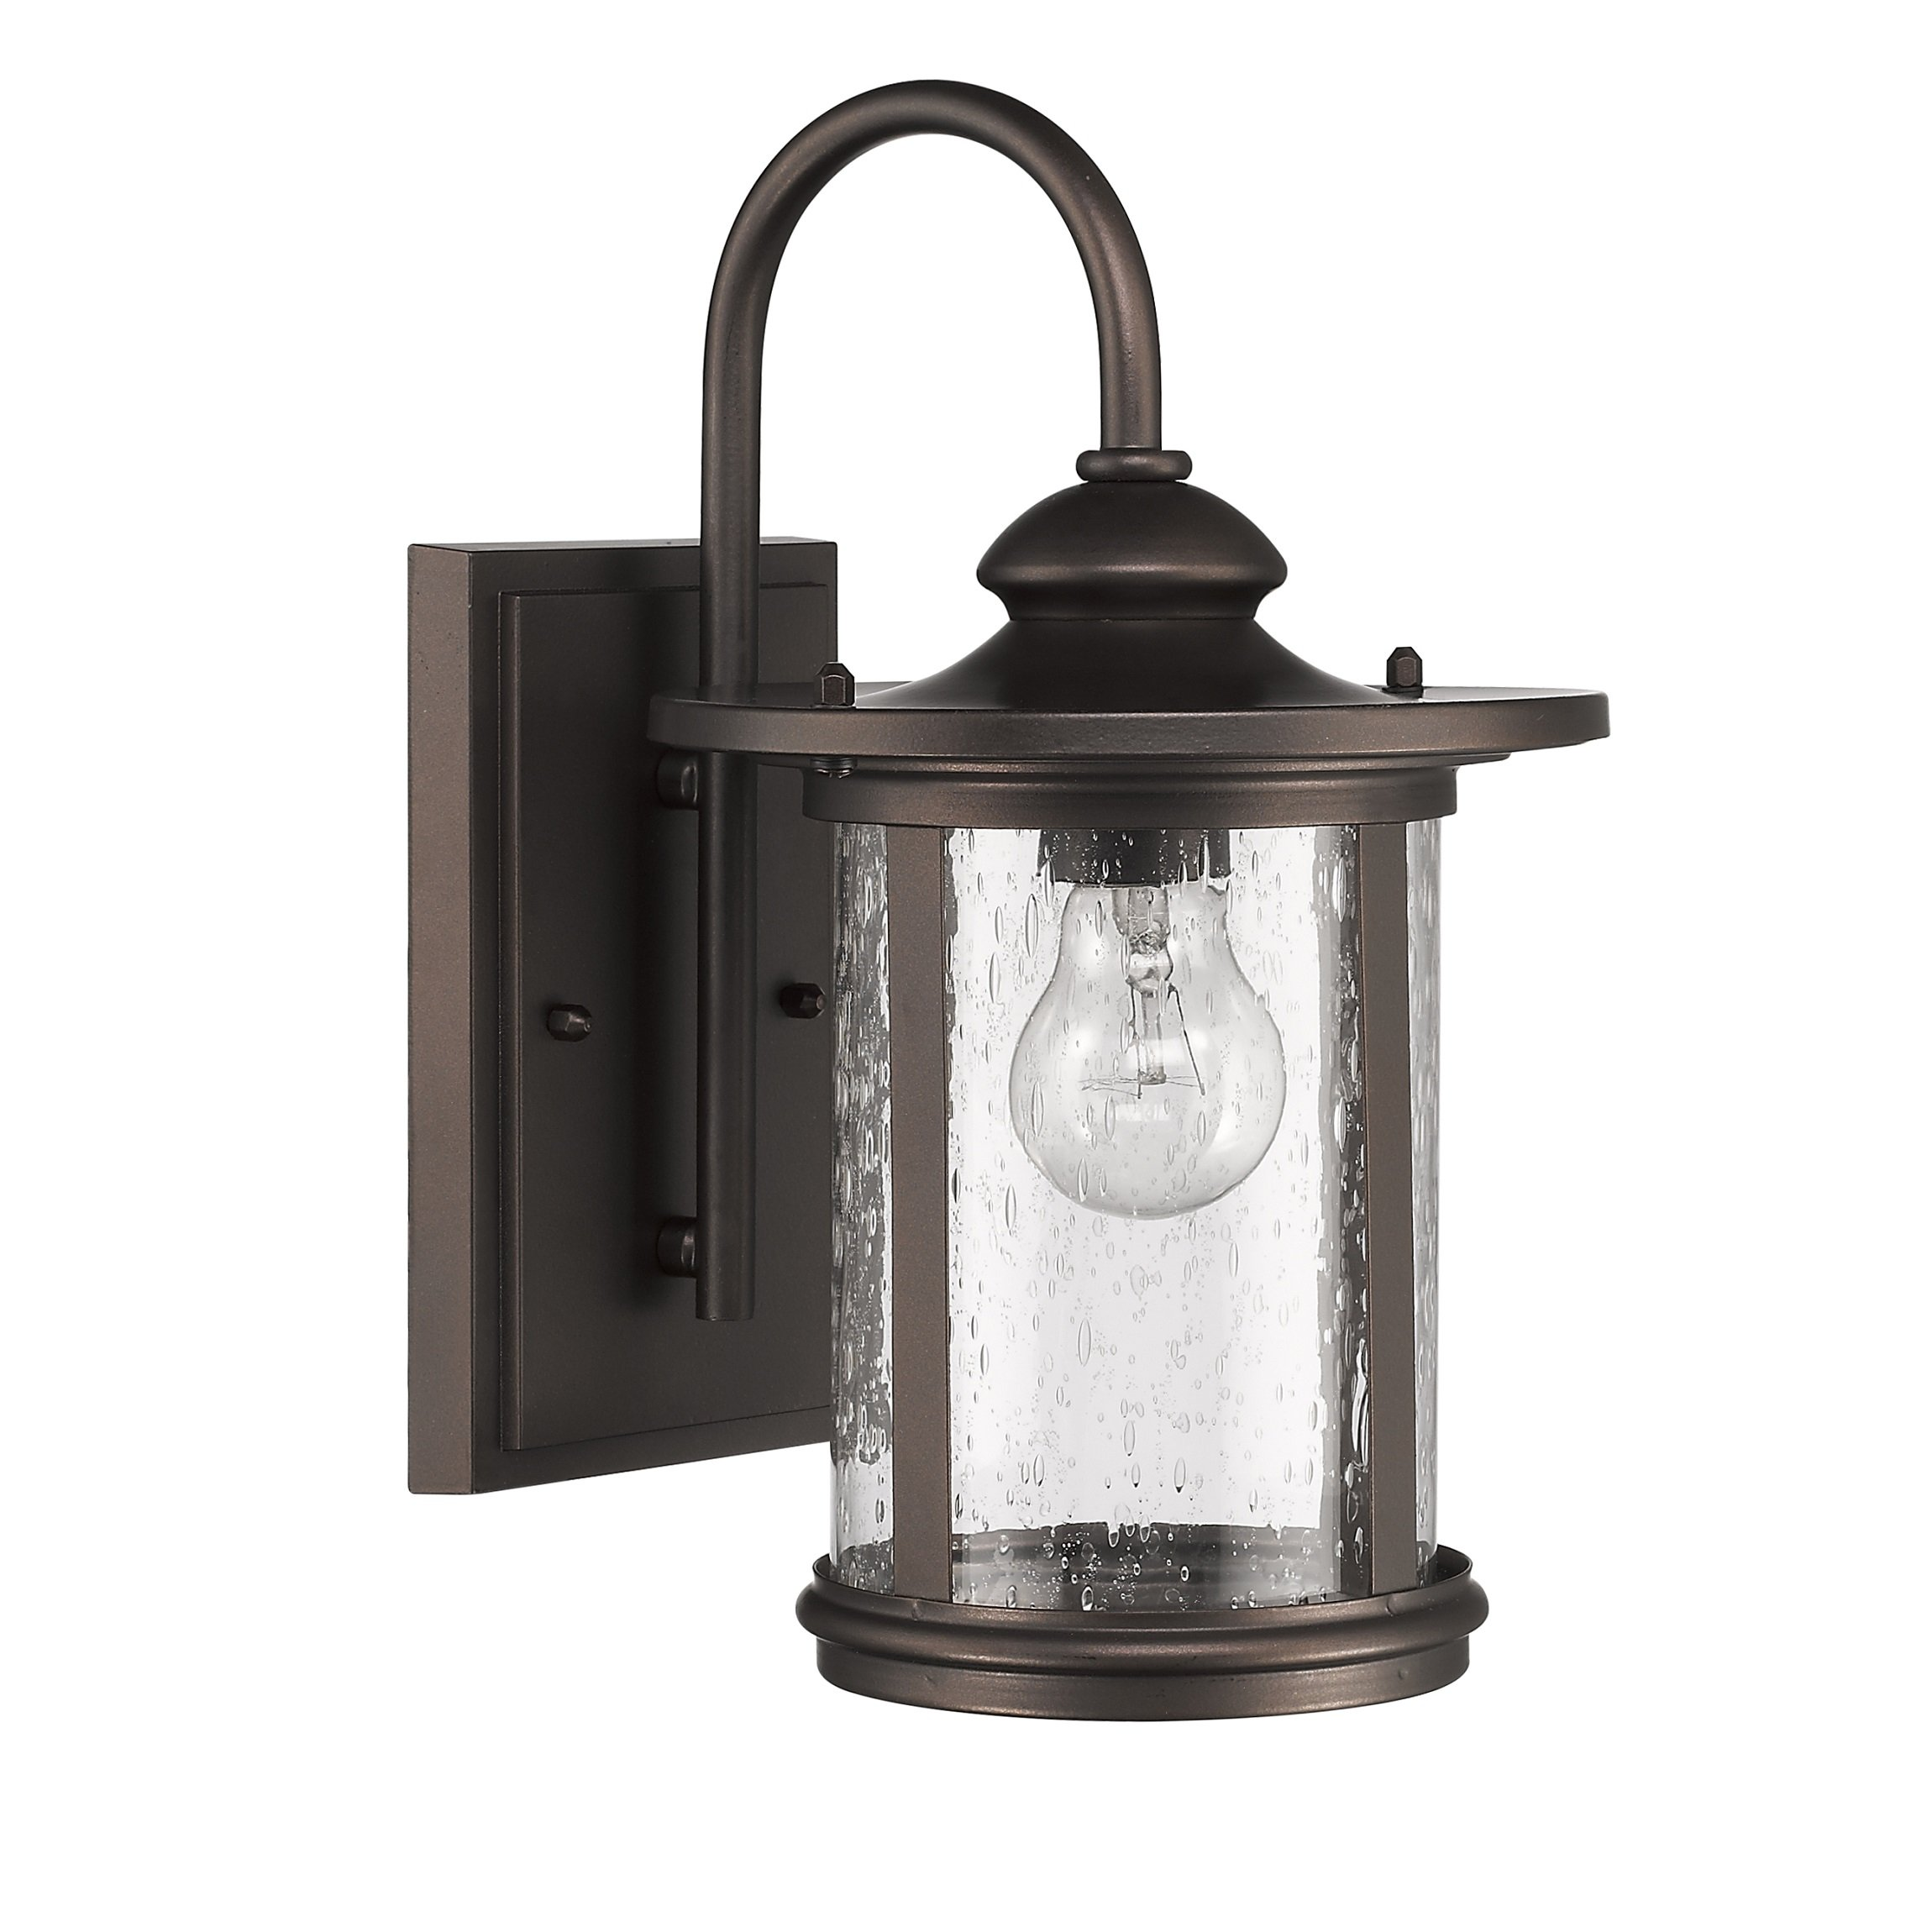 Chloe Lighting CH22026RB13-OD1 Cole Transitional 1-Light Outdoor Wall Sconce, 13'', Rubbed Bronze